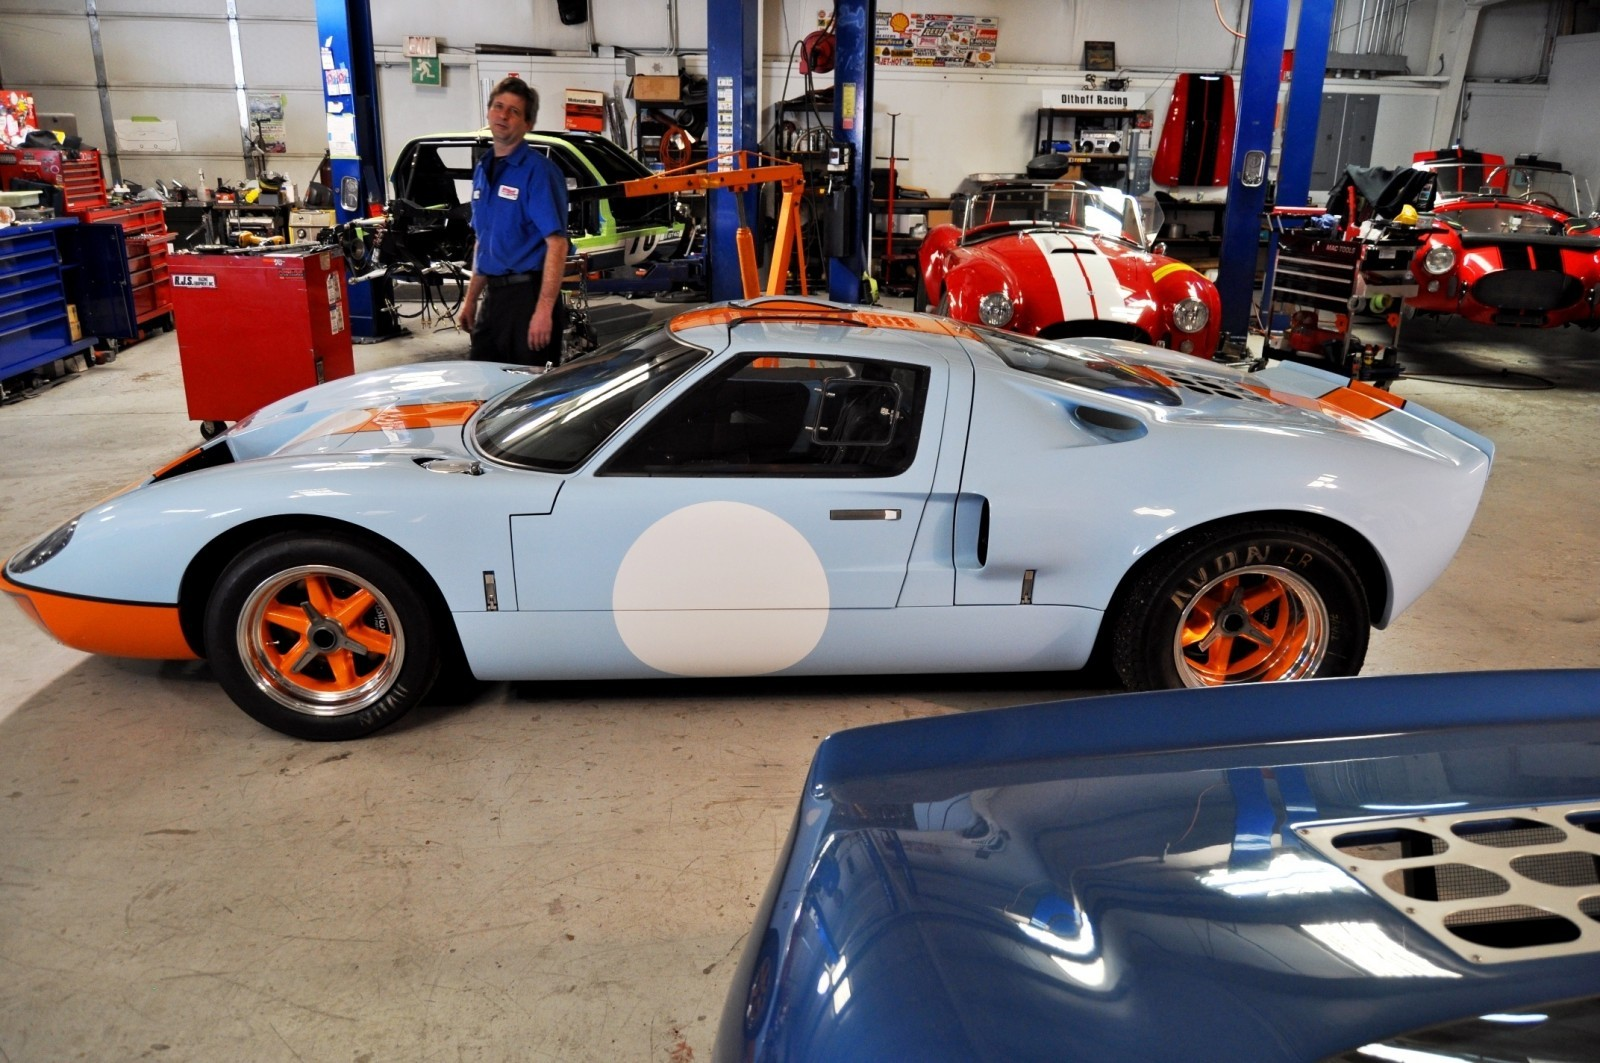 2014 Superformance GT40 Mark I - MEGA Photo Shoot and Ride-Along Videos 13